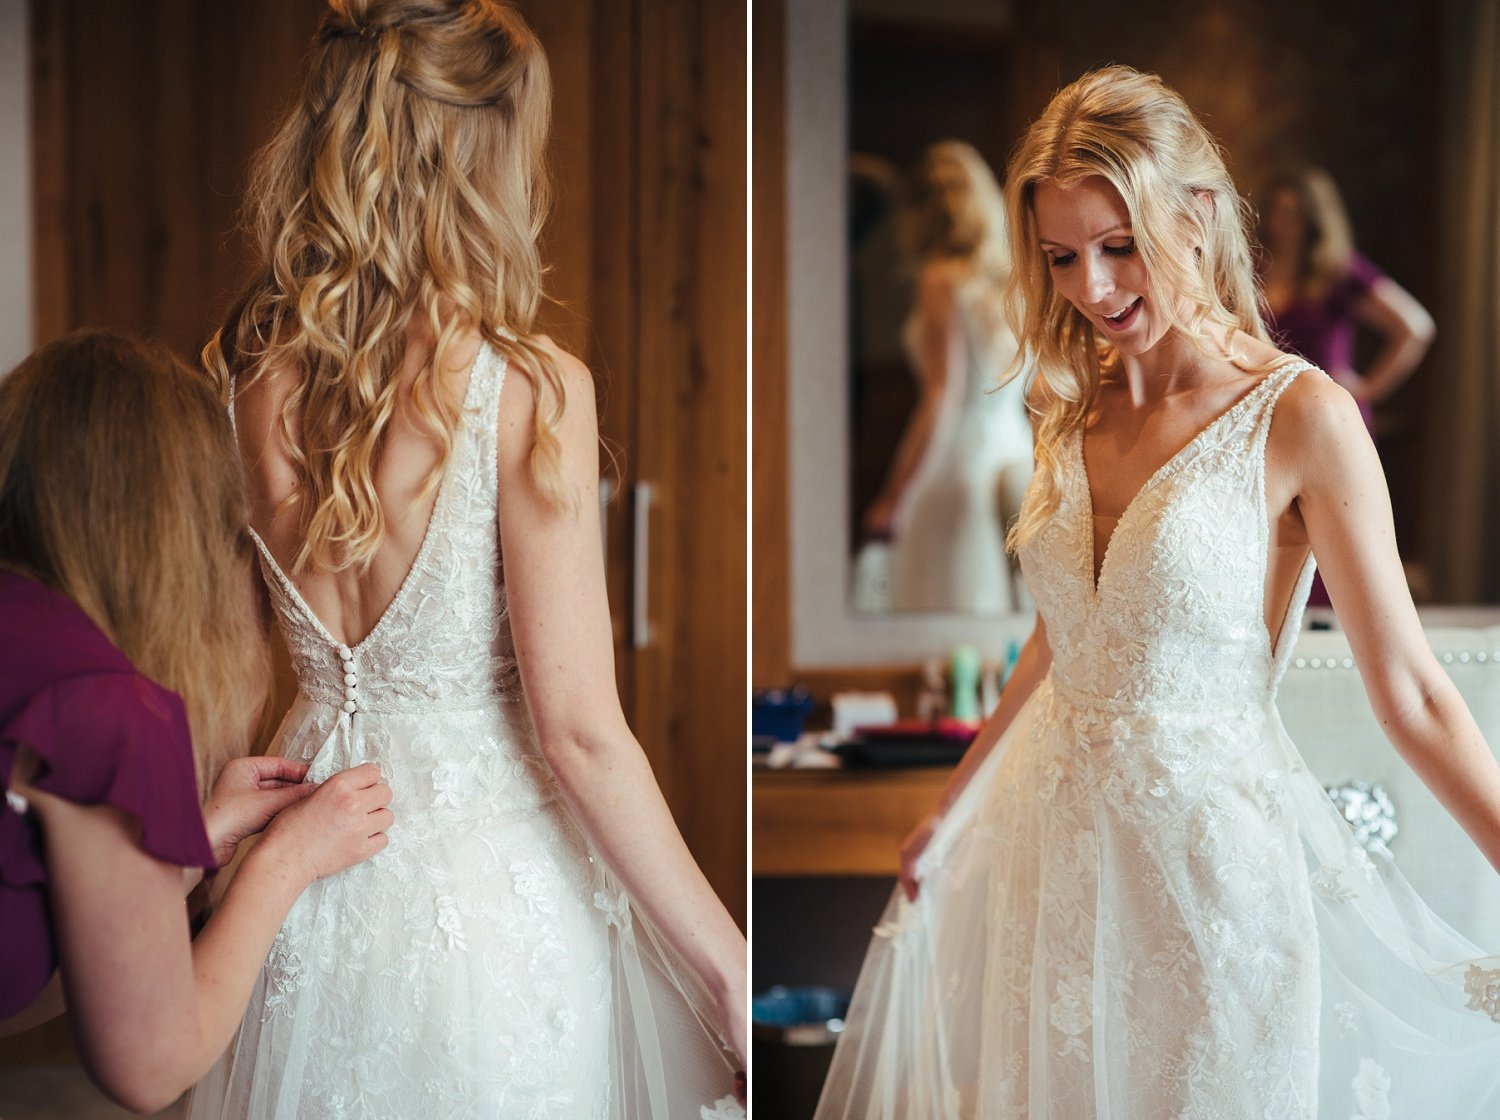 Bride getting in her wedding dress and feeling like a princess